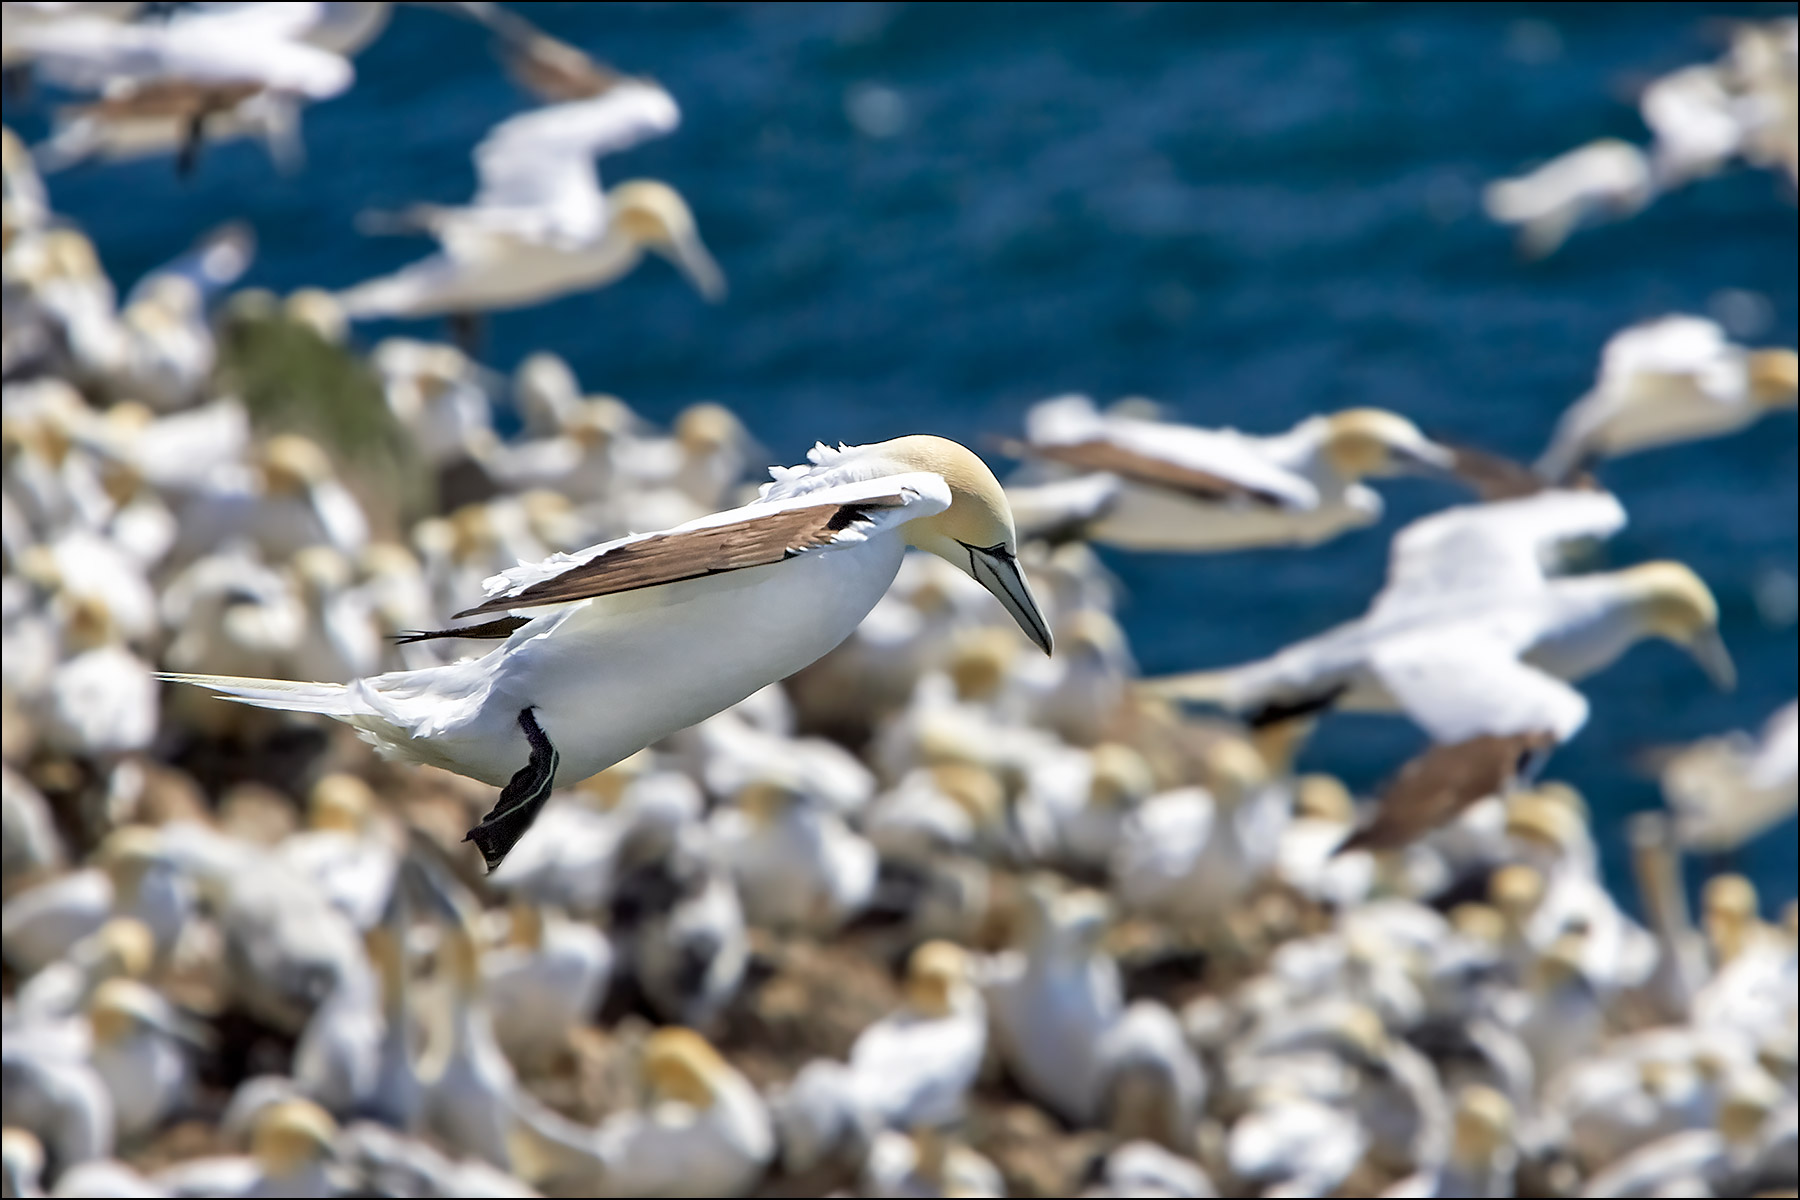 Gannet, Cape St. Mary's Ecological Reserve ©johncameron.ca